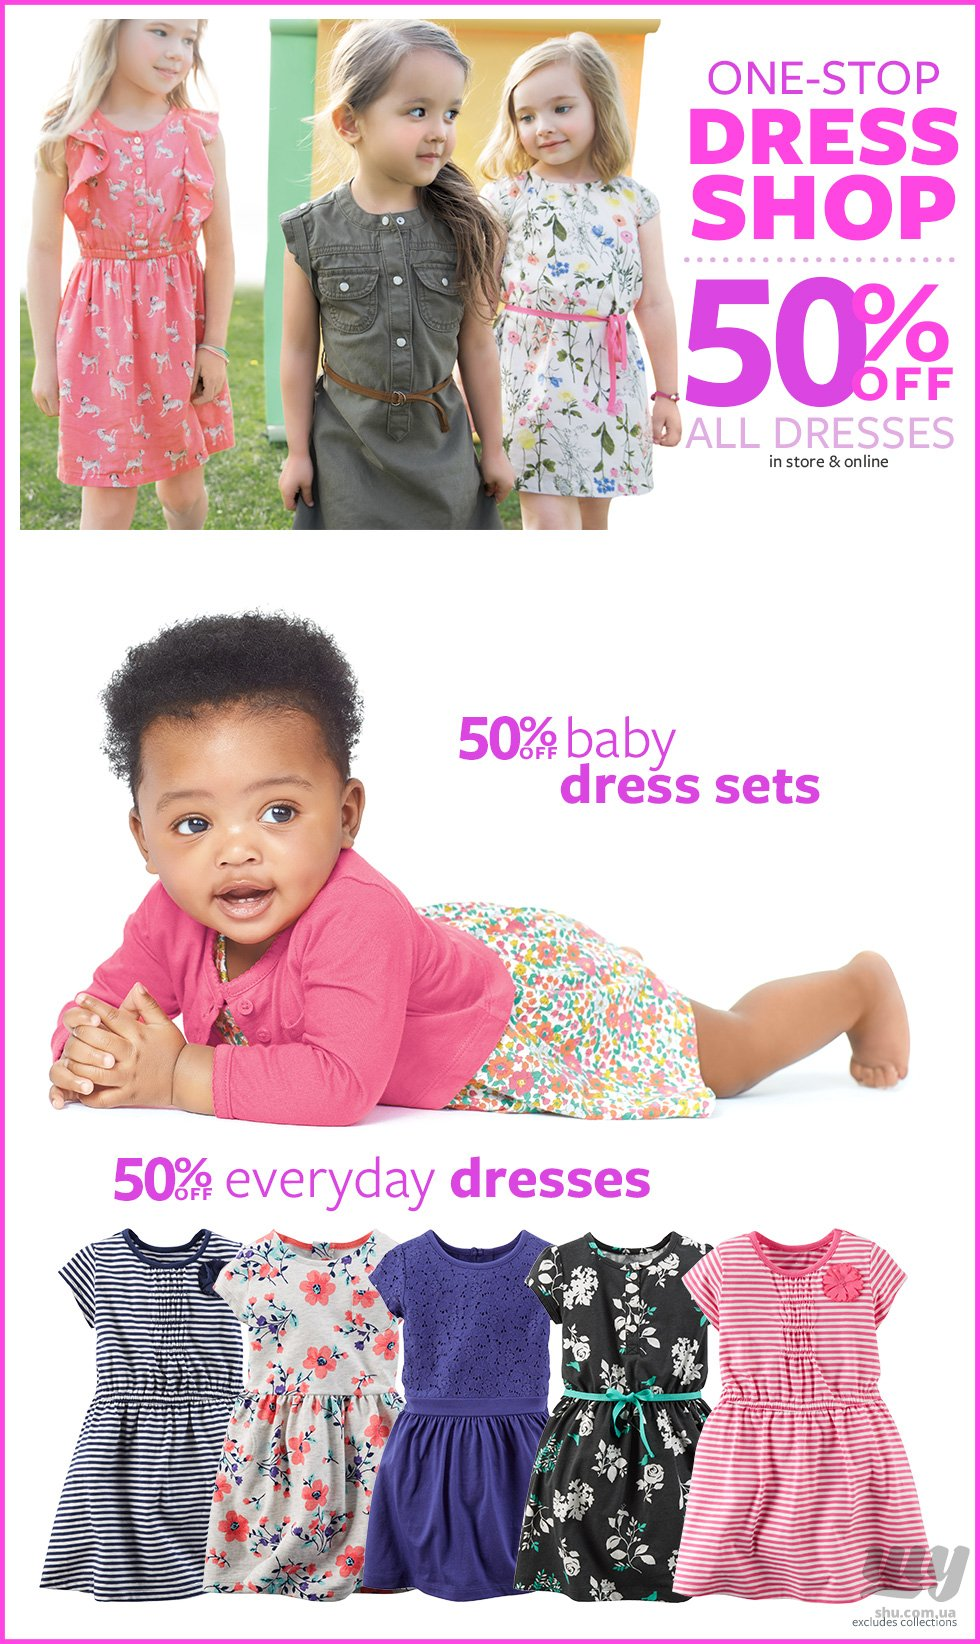 carters_0730_hp_dress_sale_hero.jpg